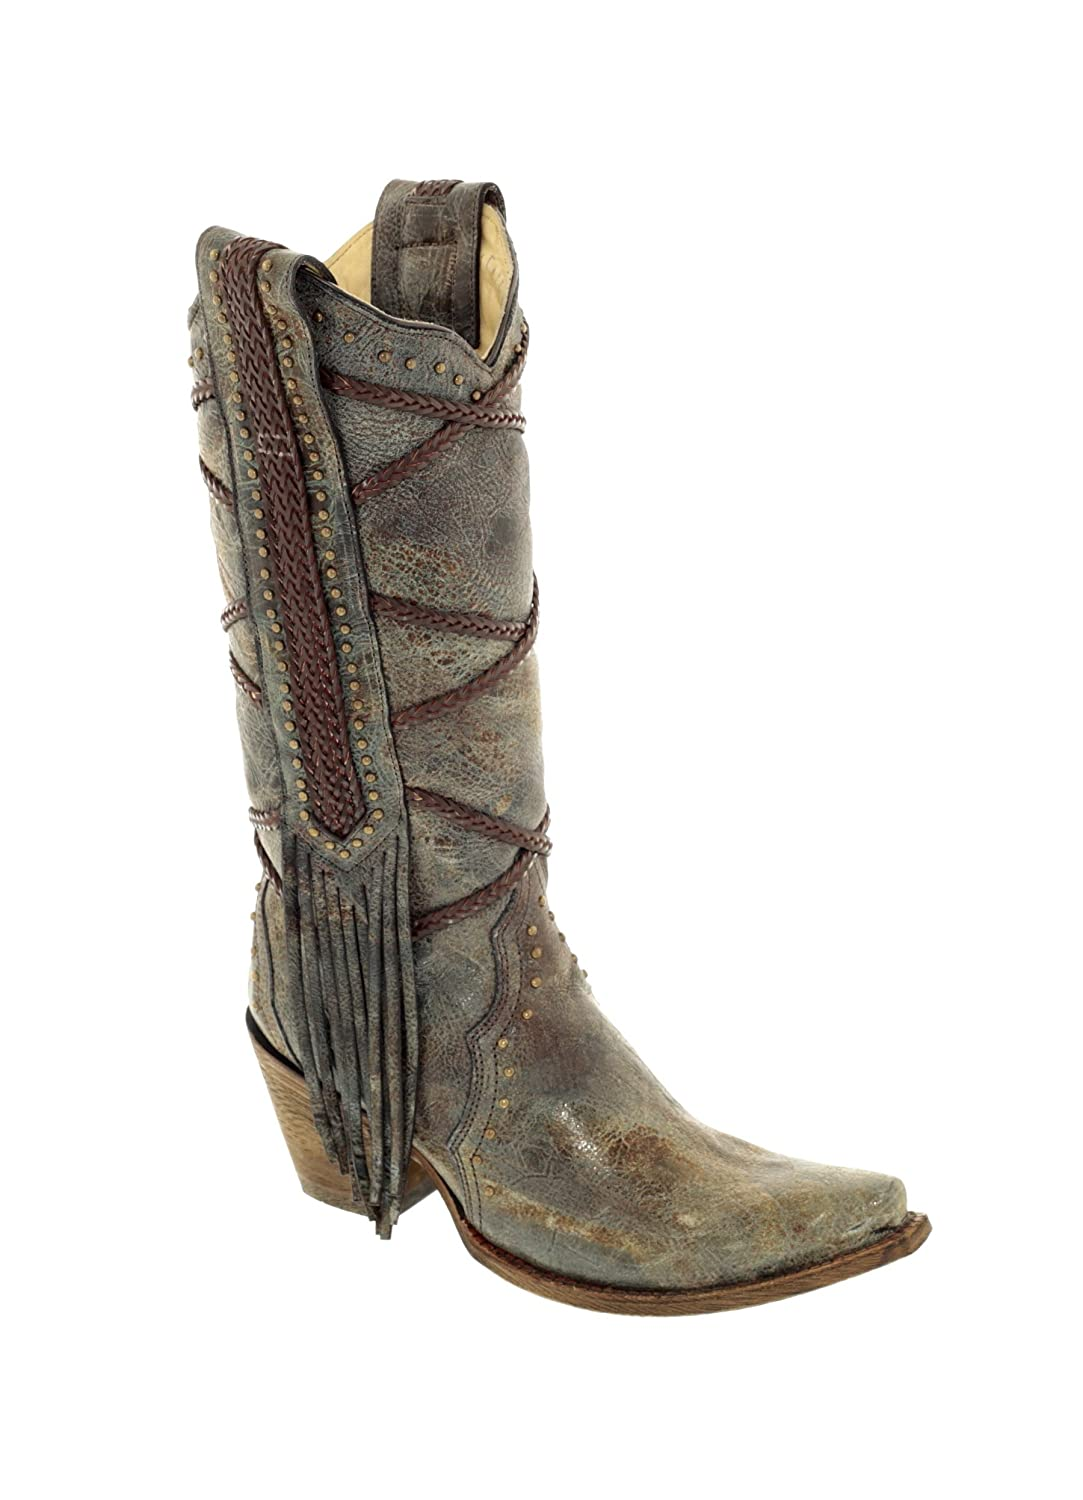 12fd6a72c63 Corral Women's 13-inch Blue/Brown Braiding & Fringe Snip Toe Distressed  Cowboy Boots